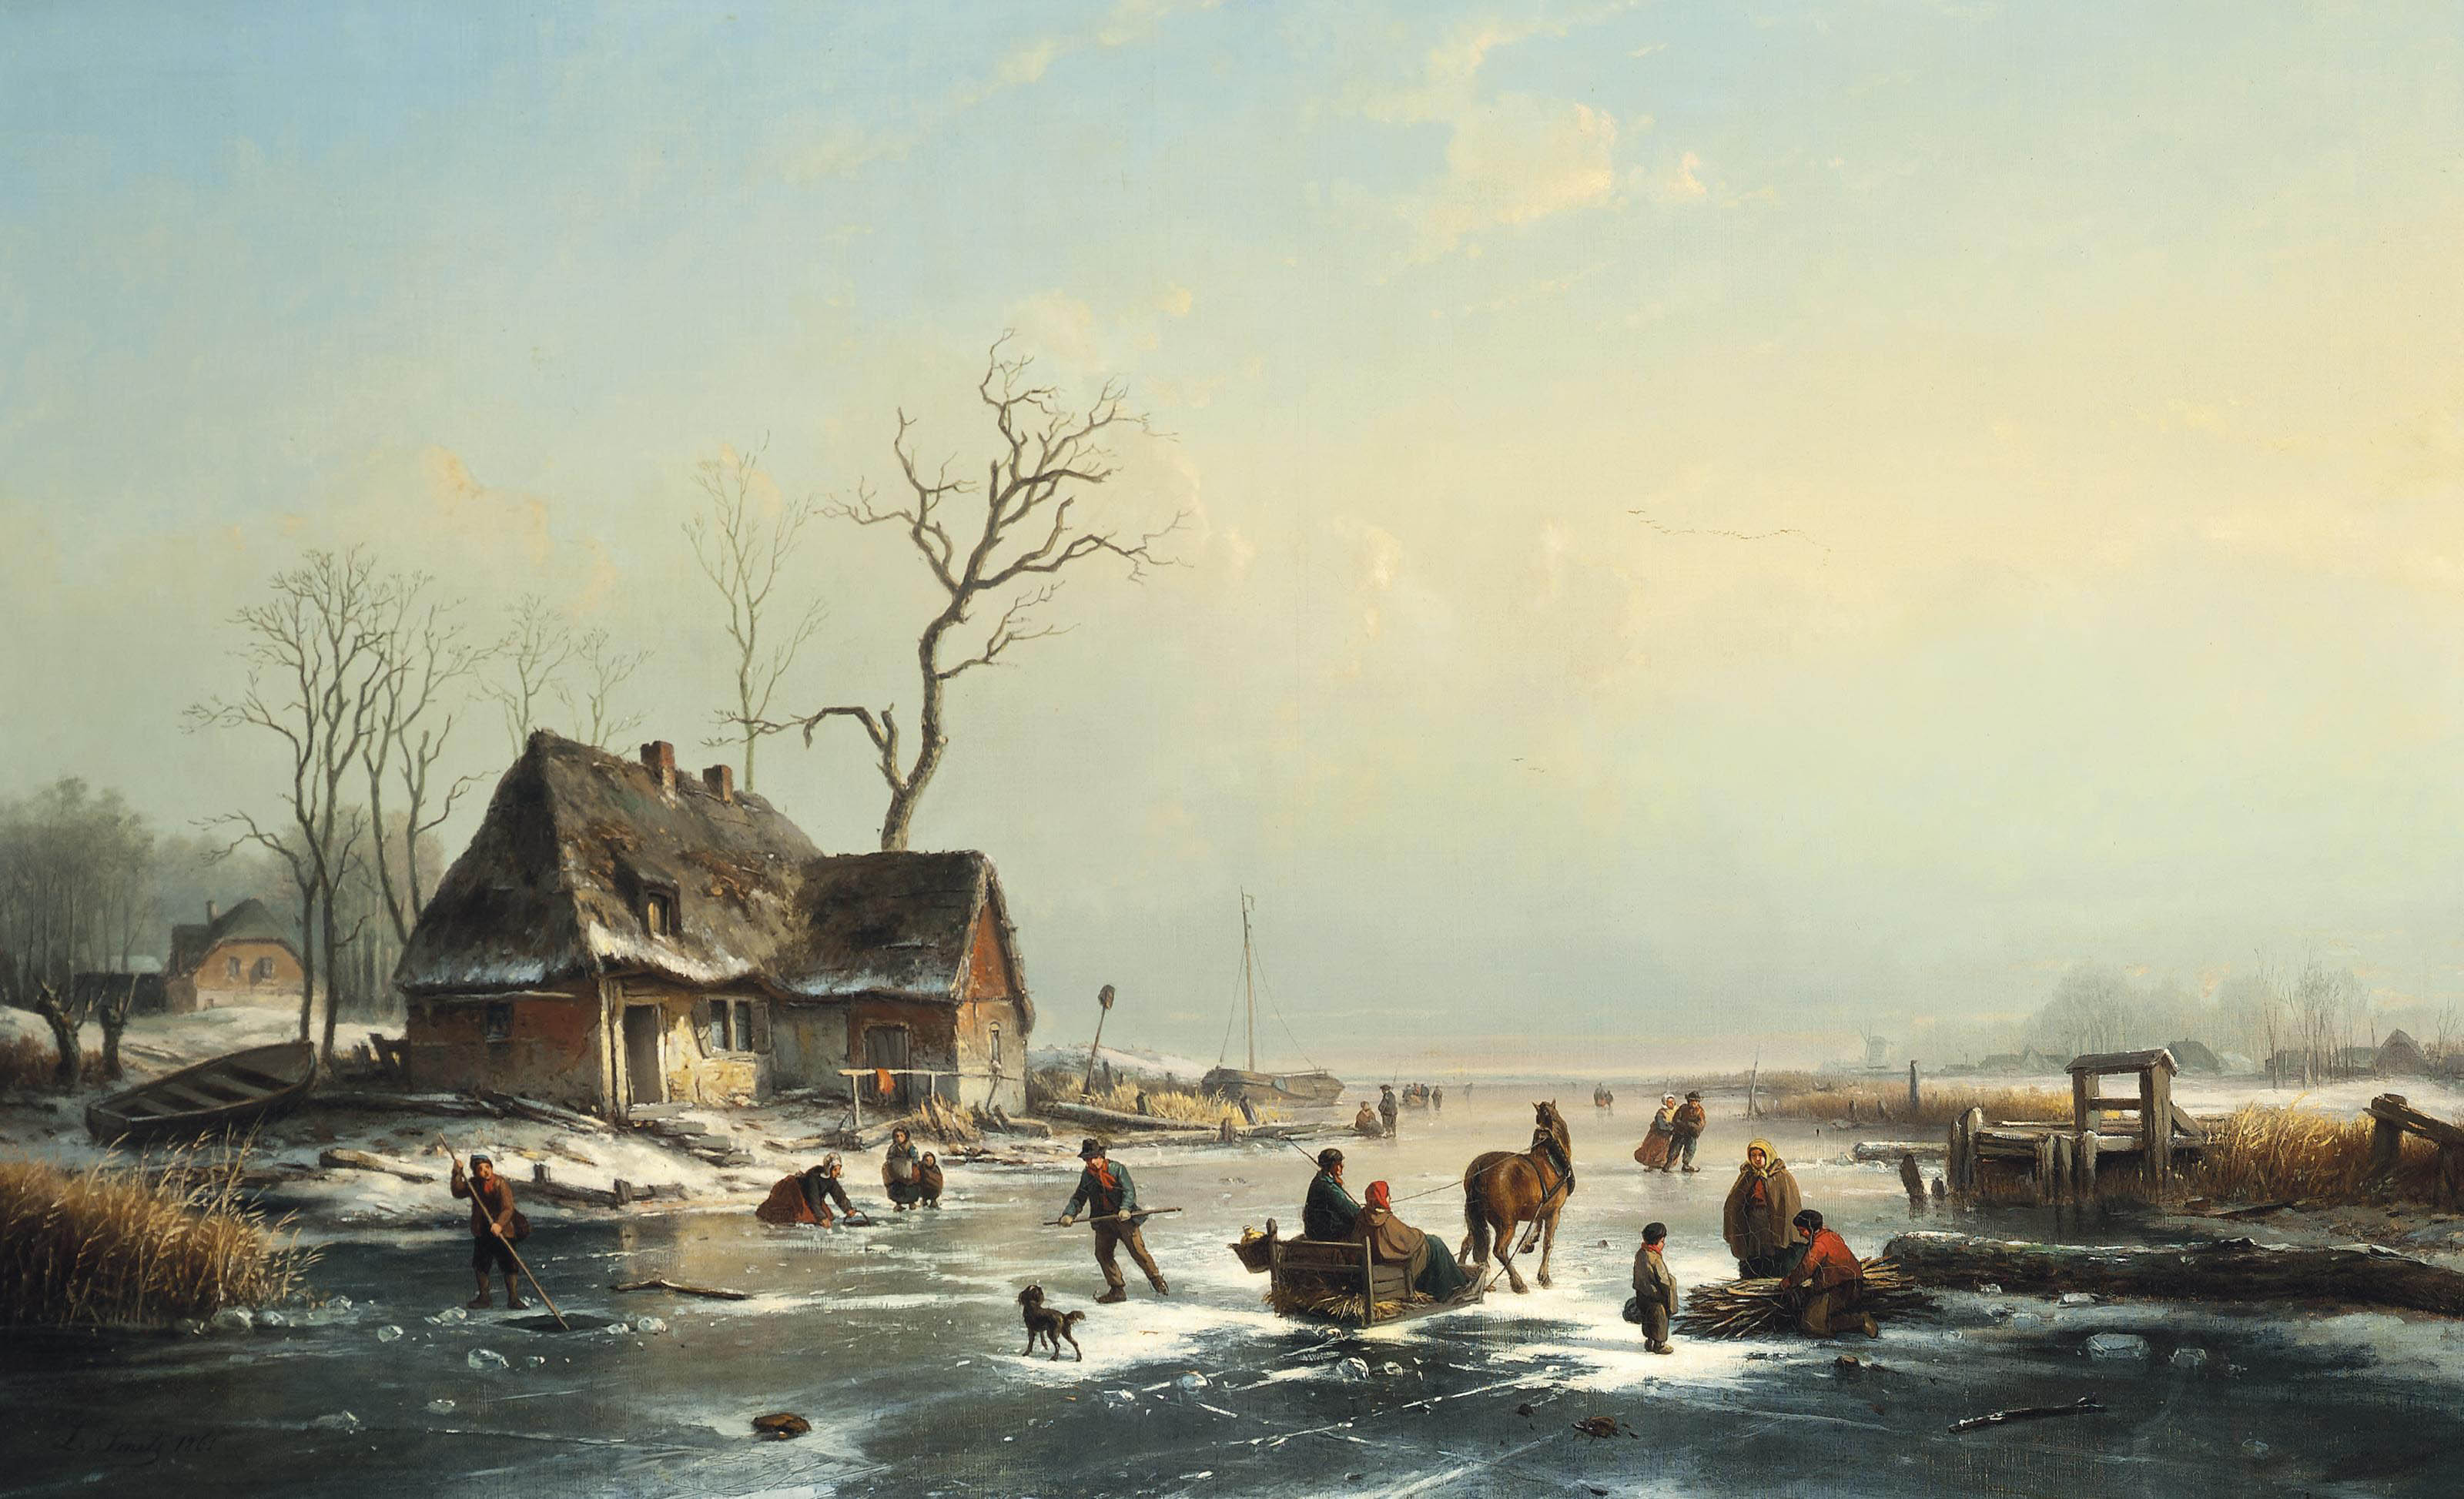 Skaters on a Dutch waterway by a riverside town